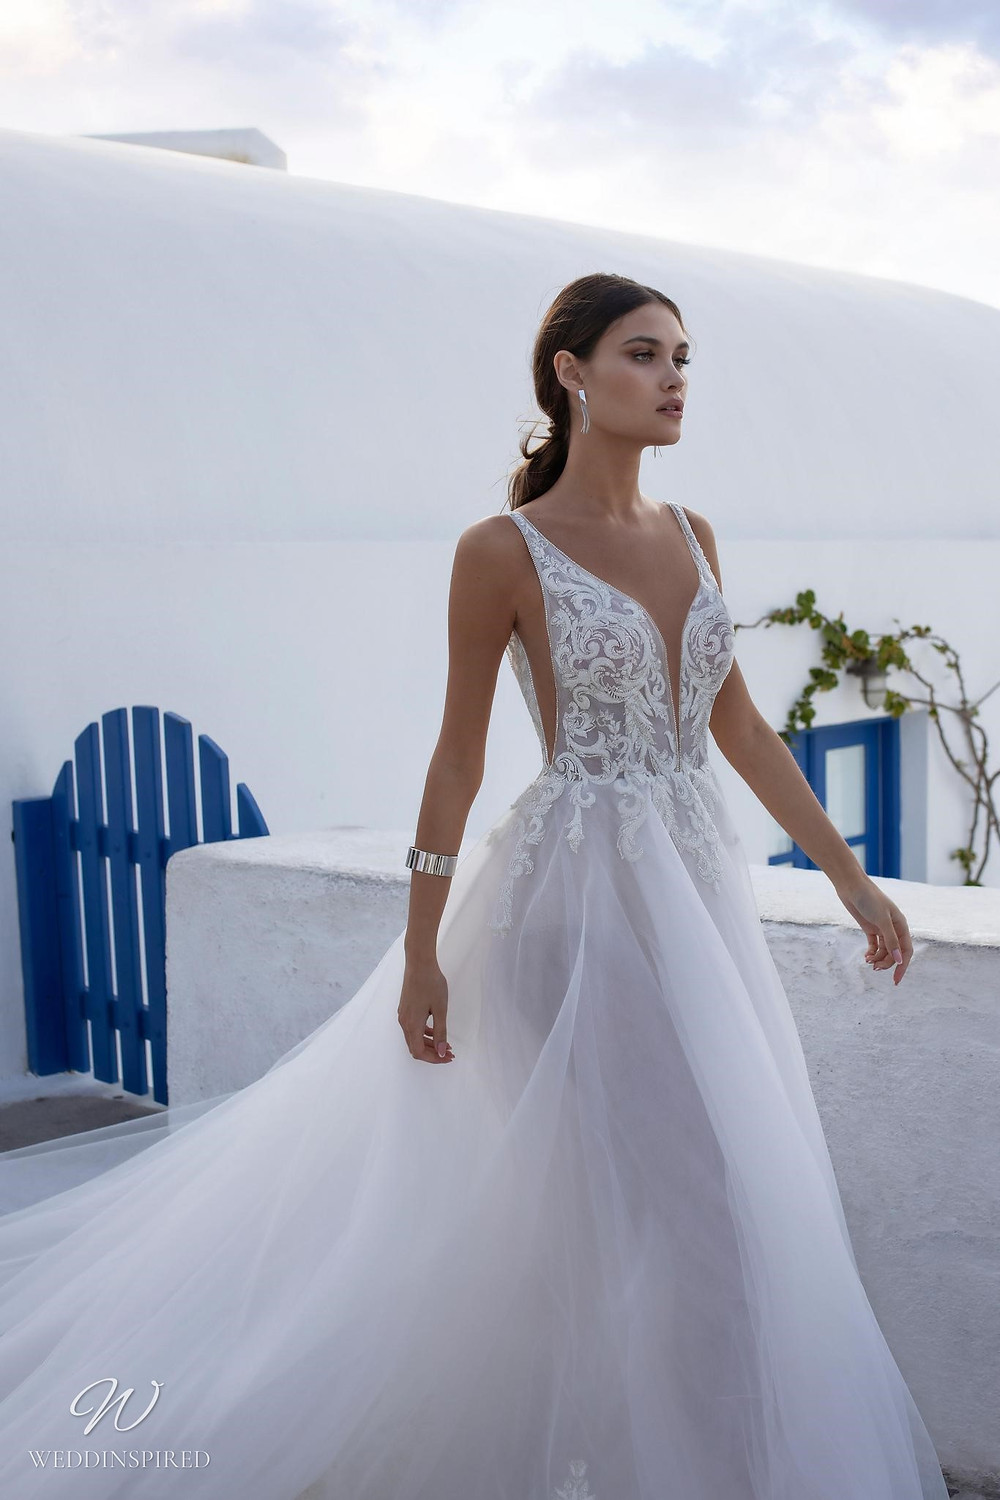 A Ricca Sposa tulle A-line wedding dress with straps and a deep v neckline